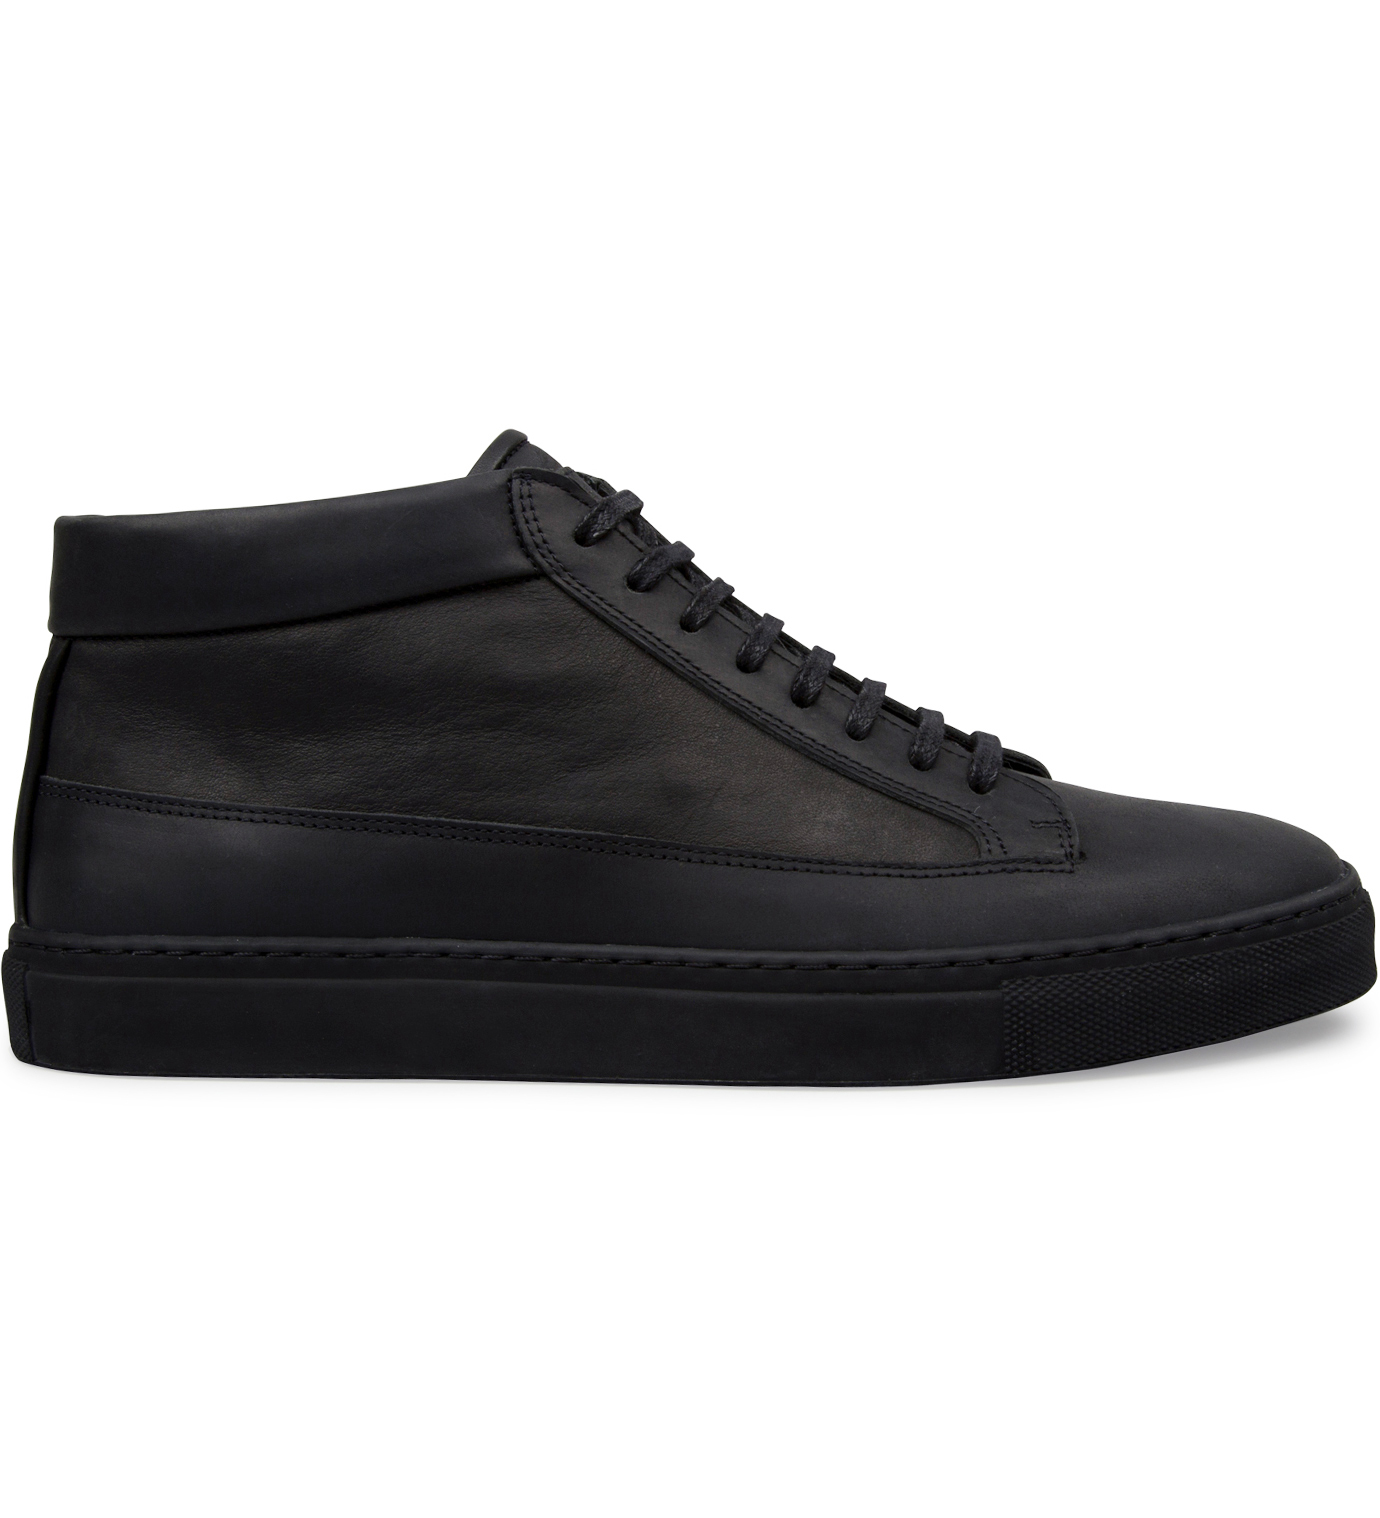 ETQ All Black Waxed Nubuck Mid Top Shoe